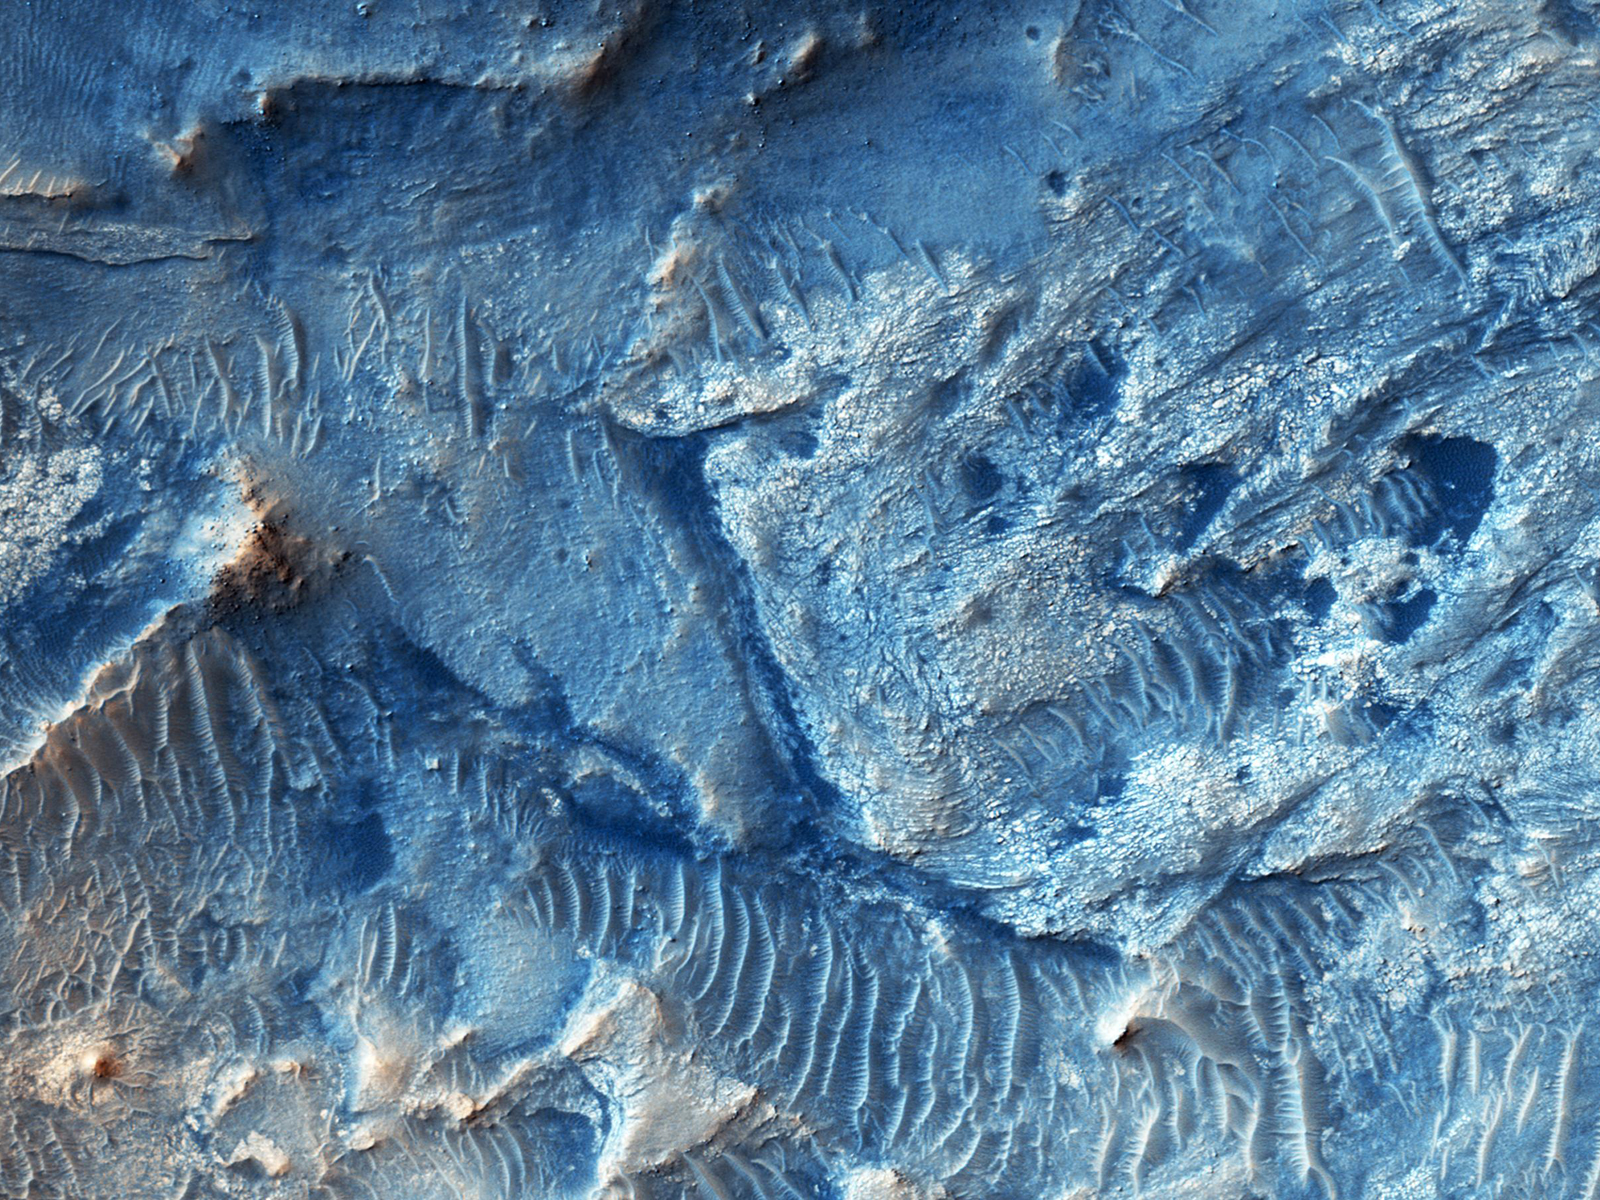 Mars' Jezero Crater | Space Wallpaper